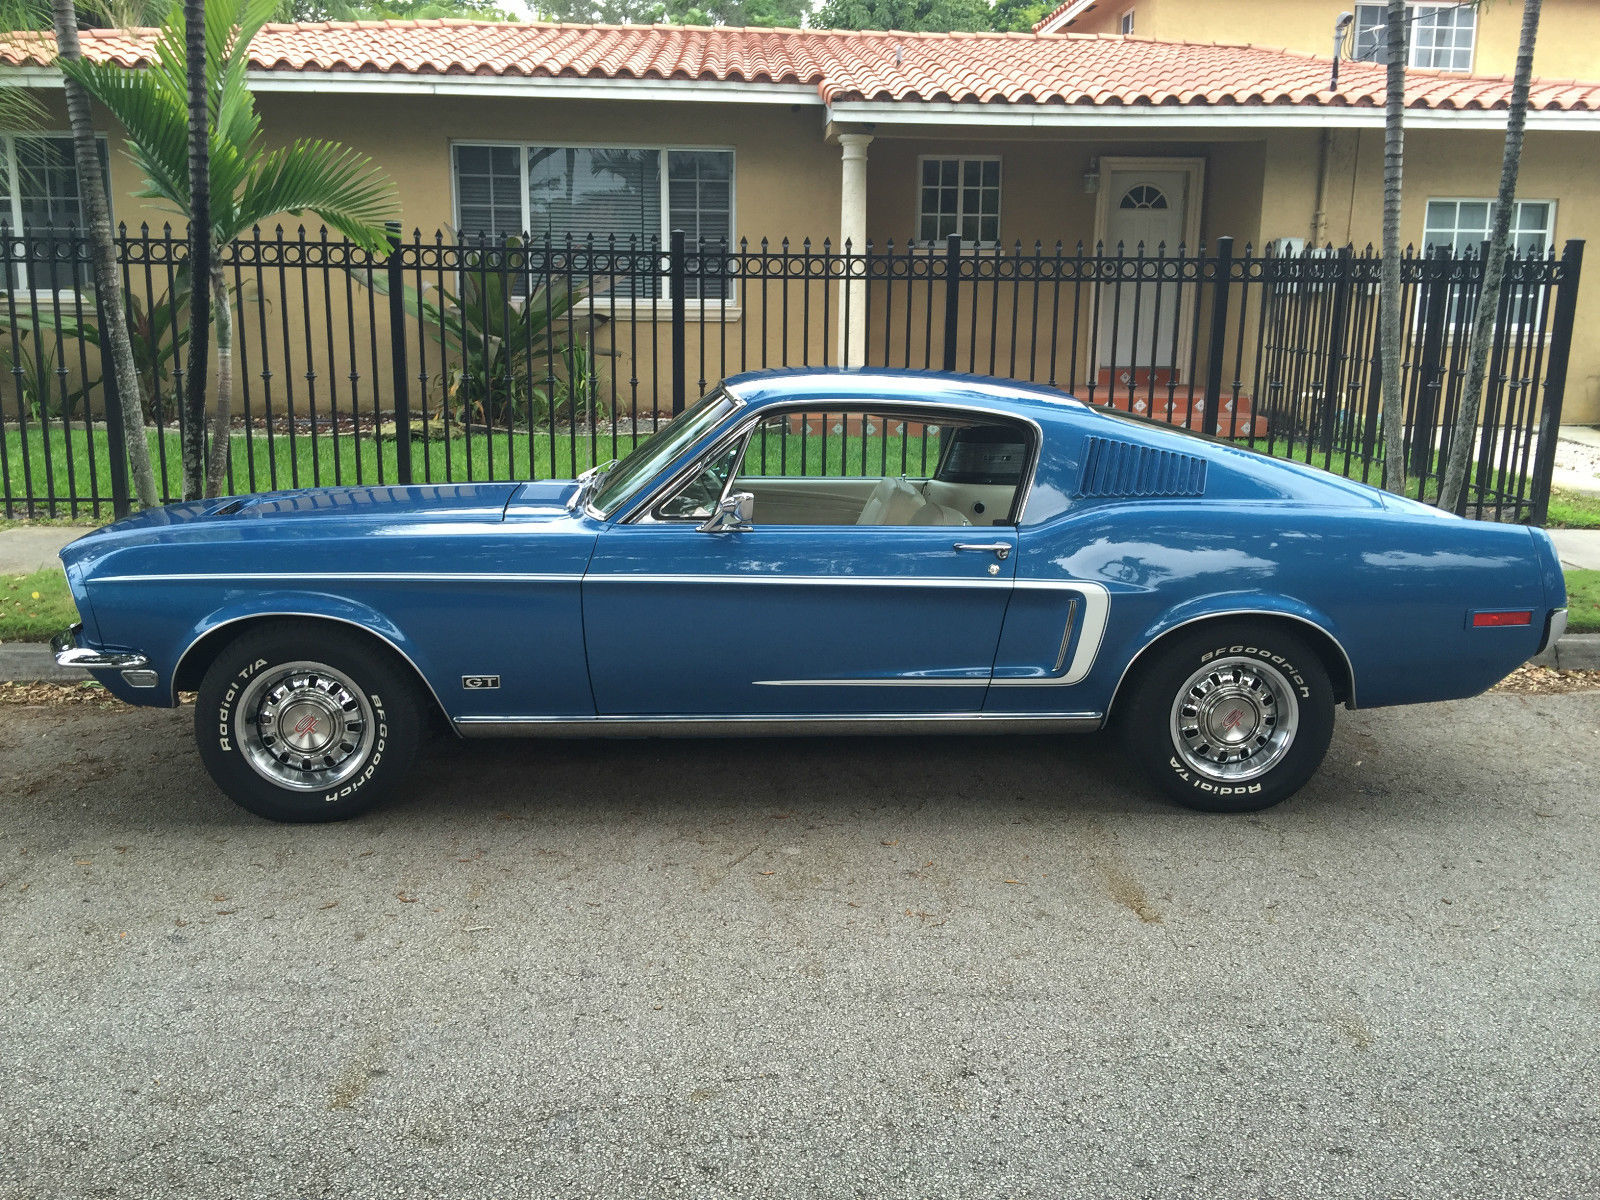 1968 ford mustang gt fastback s code 390 with matching numbers classic ford mustang 1968 for sale. Black Bedroom Furniture Sets. Home Design Ideas